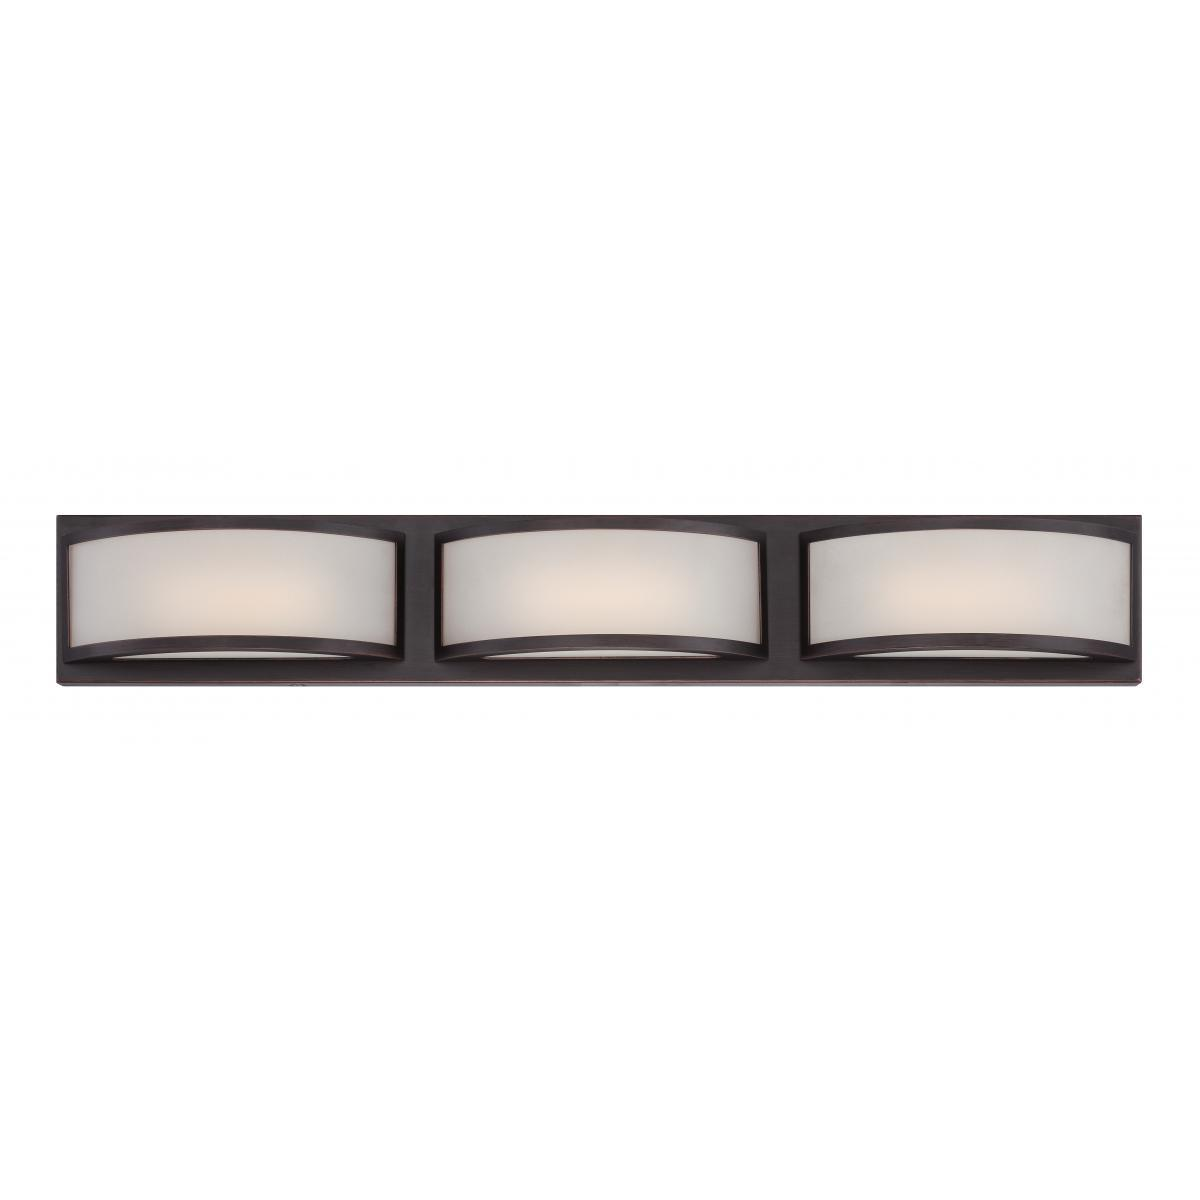 Mercer (3) LED Wall Sconce Wall Nuvo Lighting